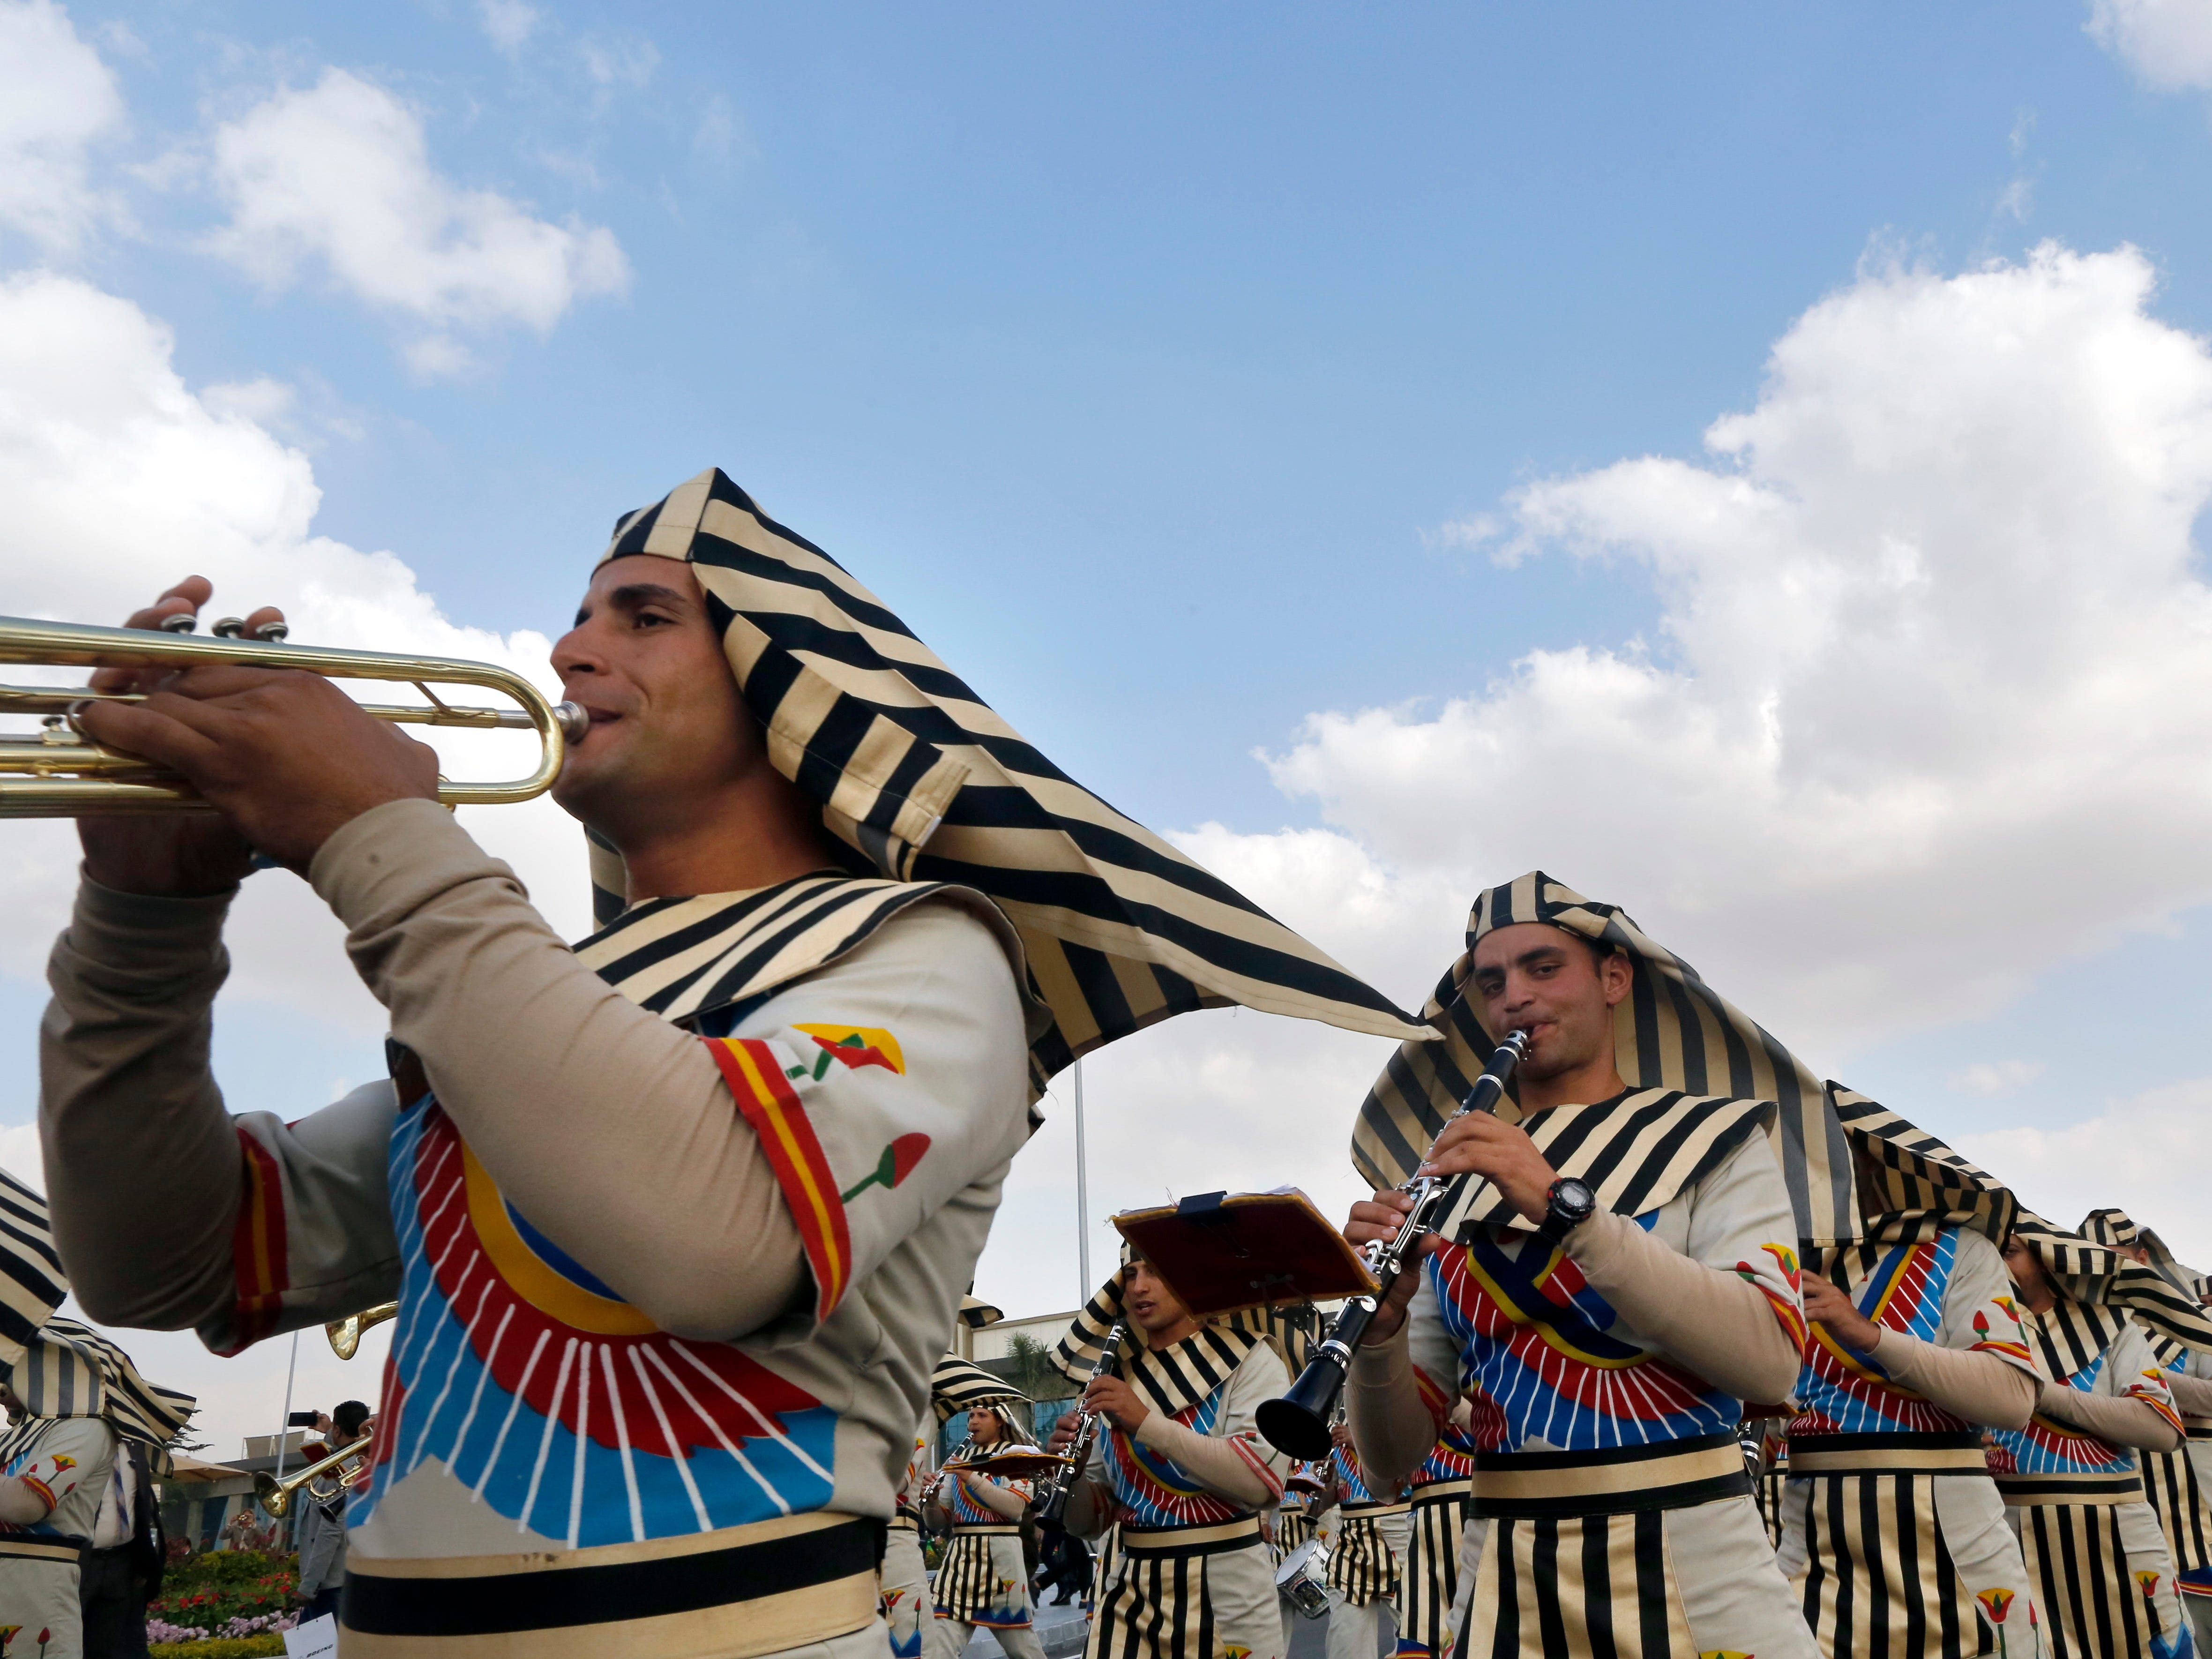 Members of an Army band wear Pharaonic costumes during the opening of the first arms fair organized in Cairo, Egypt, Monday, Dec. 3, 2018. Egypt's President Abdel-Fattah el-Sissi inaugurated the fair, where hundreds of companies are participating.